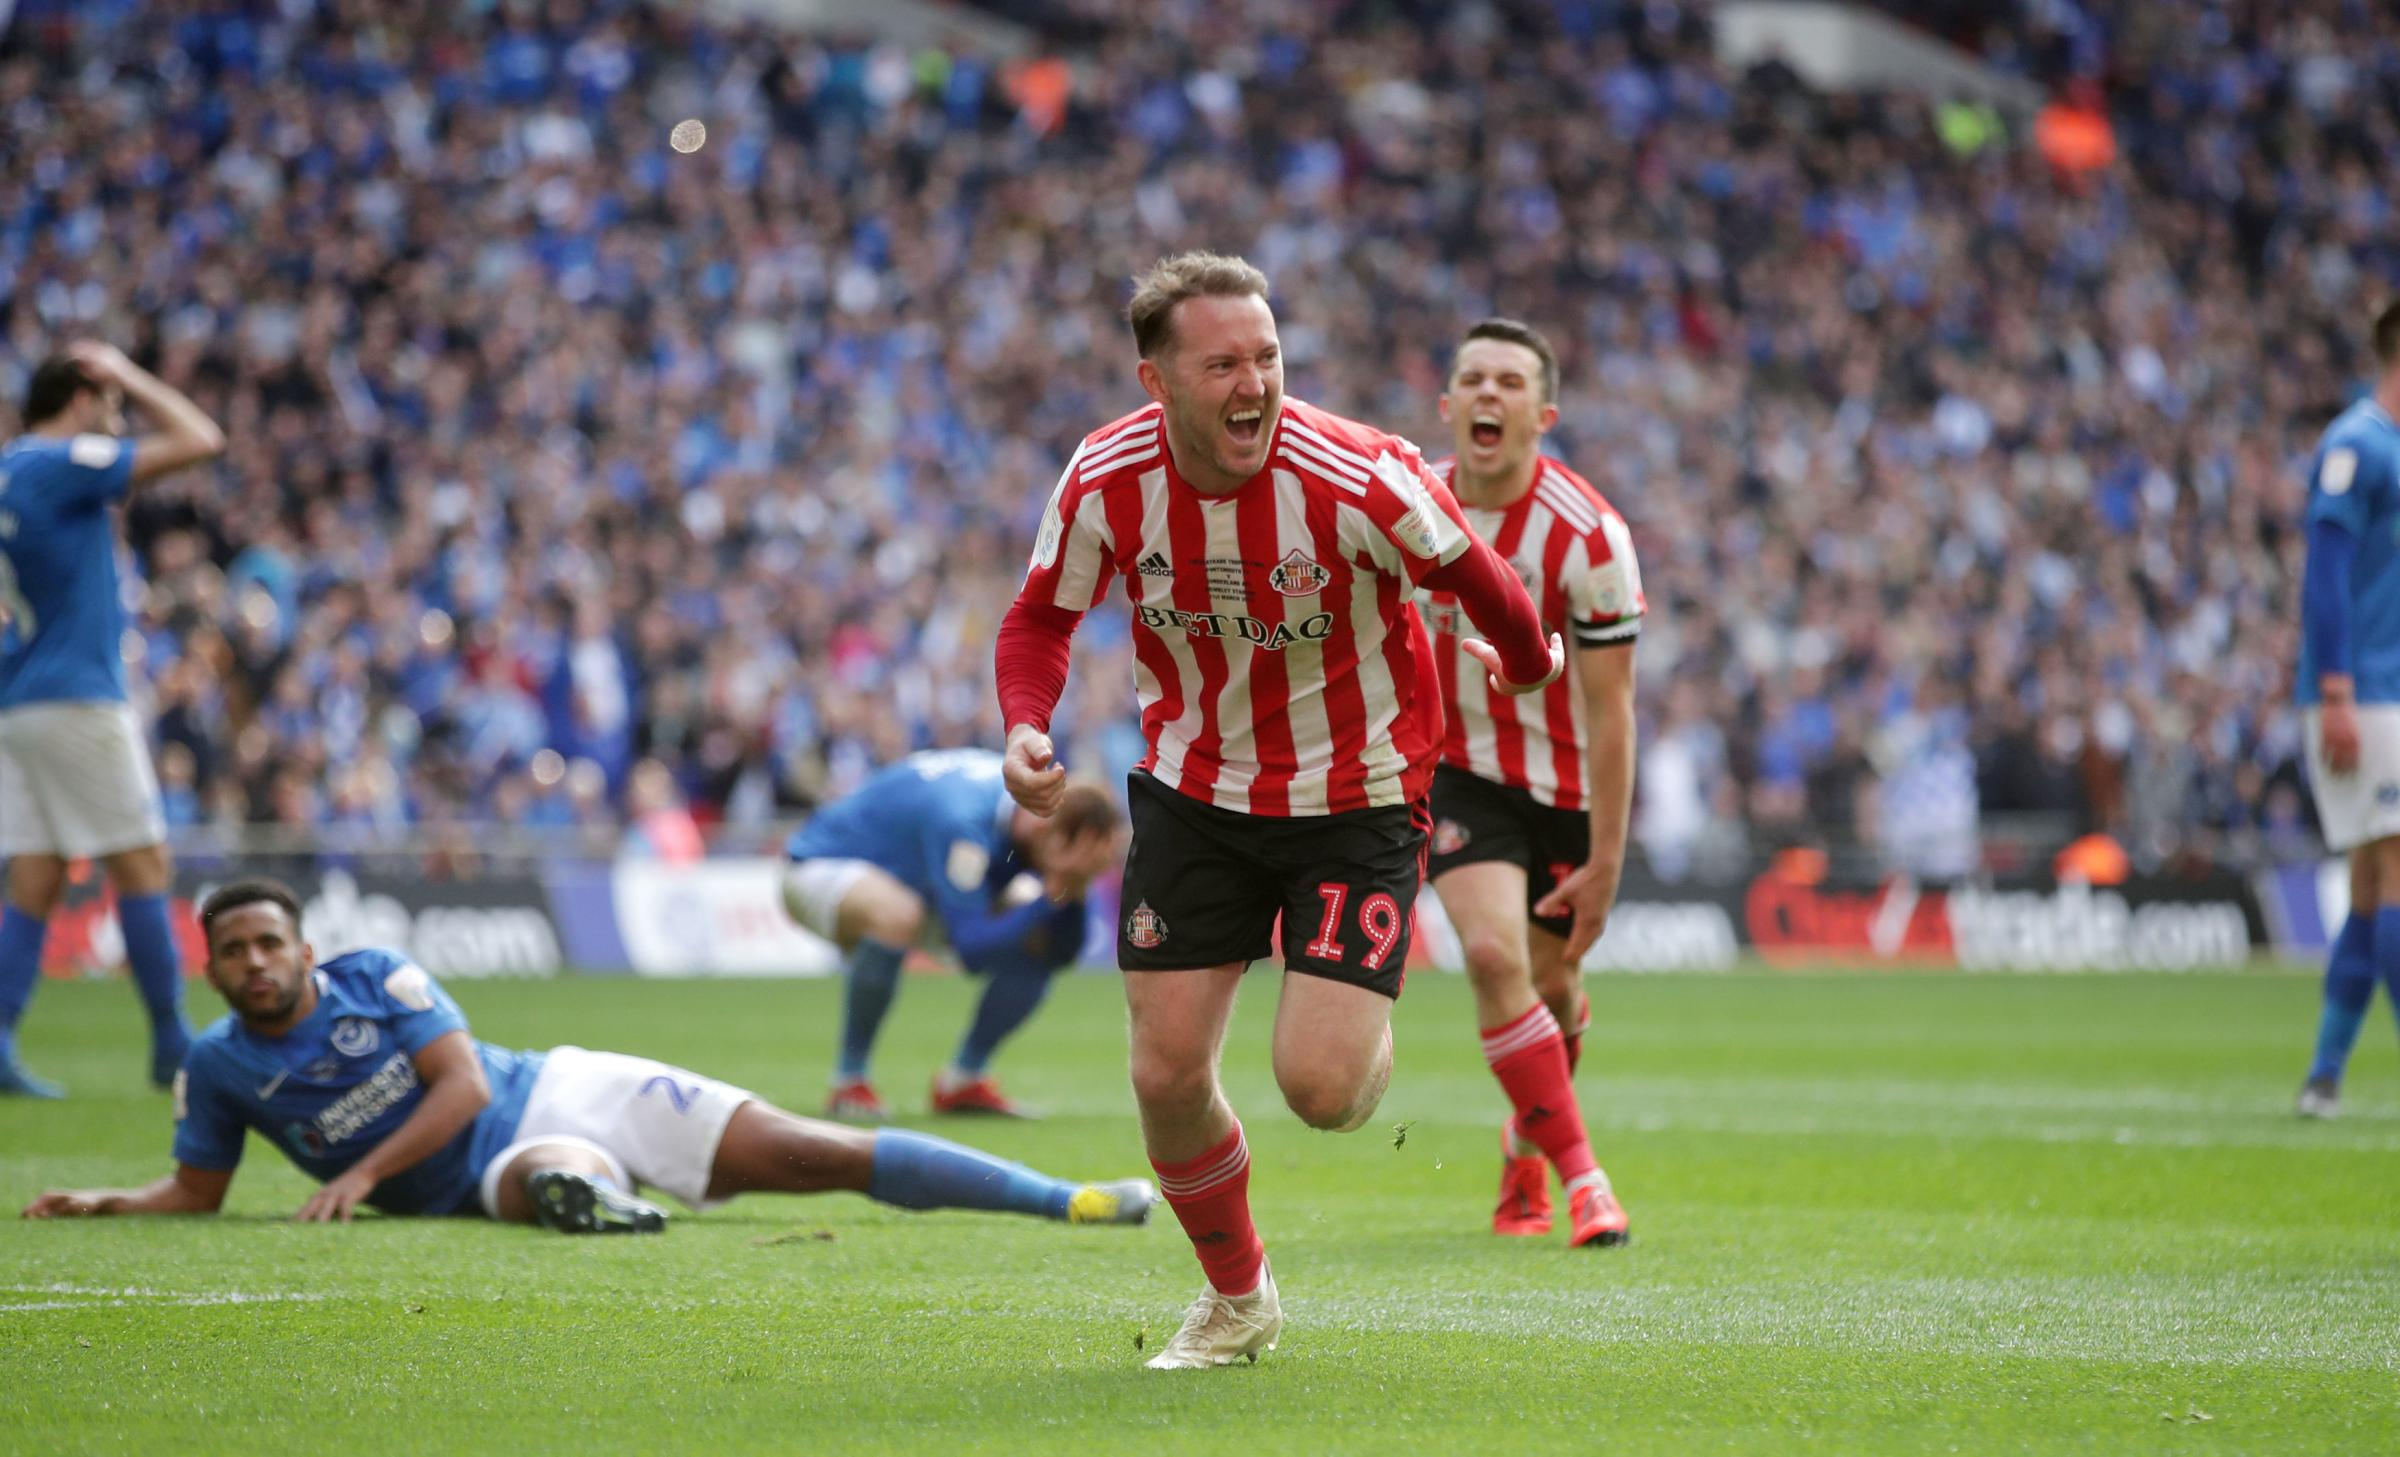 Sunderland's Aiden McGeady celebrates scoring his side's second goal of the game during the Checkatrade Trophy Final at Wembley Stadium, London. PRESS ASSOCIATION Photo. Picture date: Sunday March 31, 2019. See PA story SOCCER Final. Photo credit